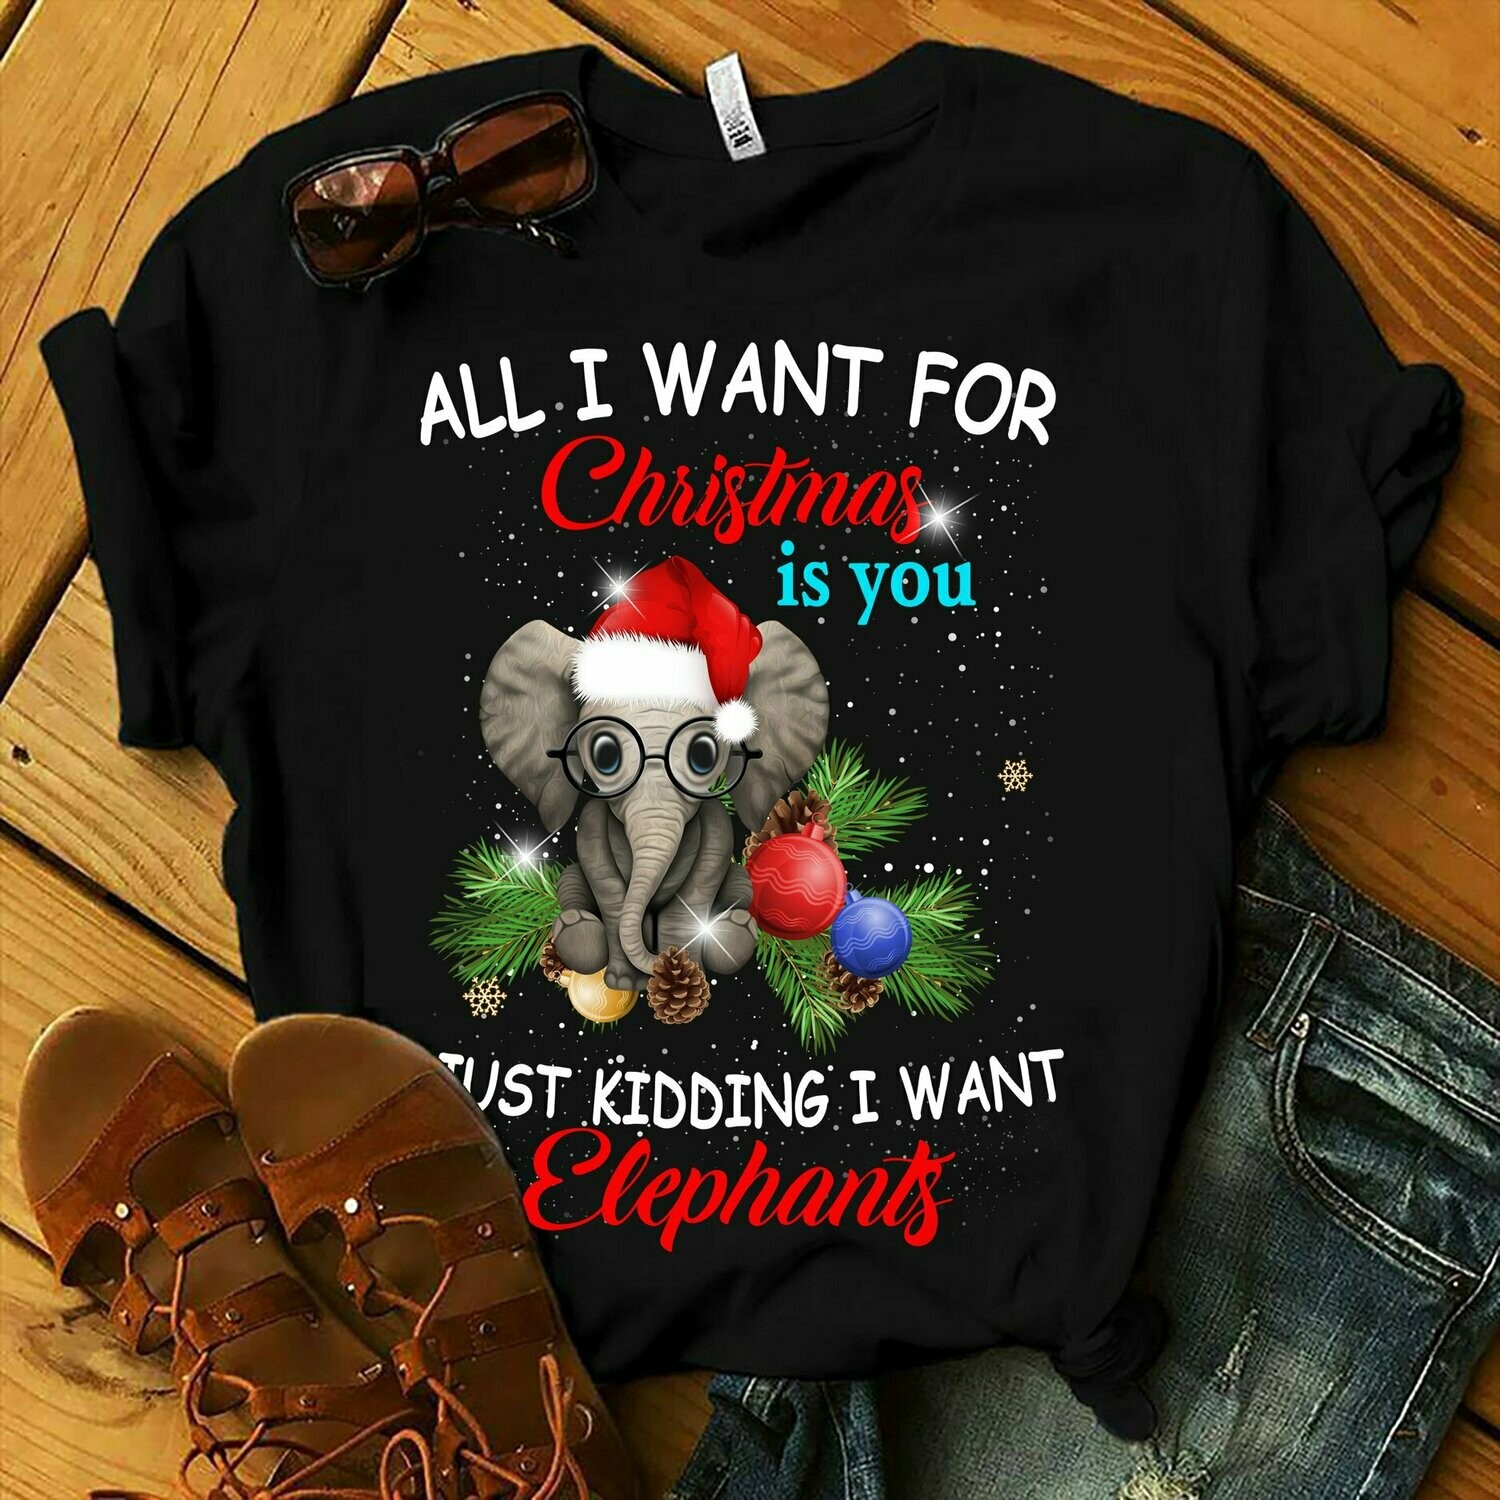 All I want for christmas is you just kidding I want elephants shirt, Ugly Christmas Sweater Elephant Sweatshirt, Just a Girl Who Loves Elephants Shirt, Elephant Gifts,  Flower Shirt, Floral Design tee